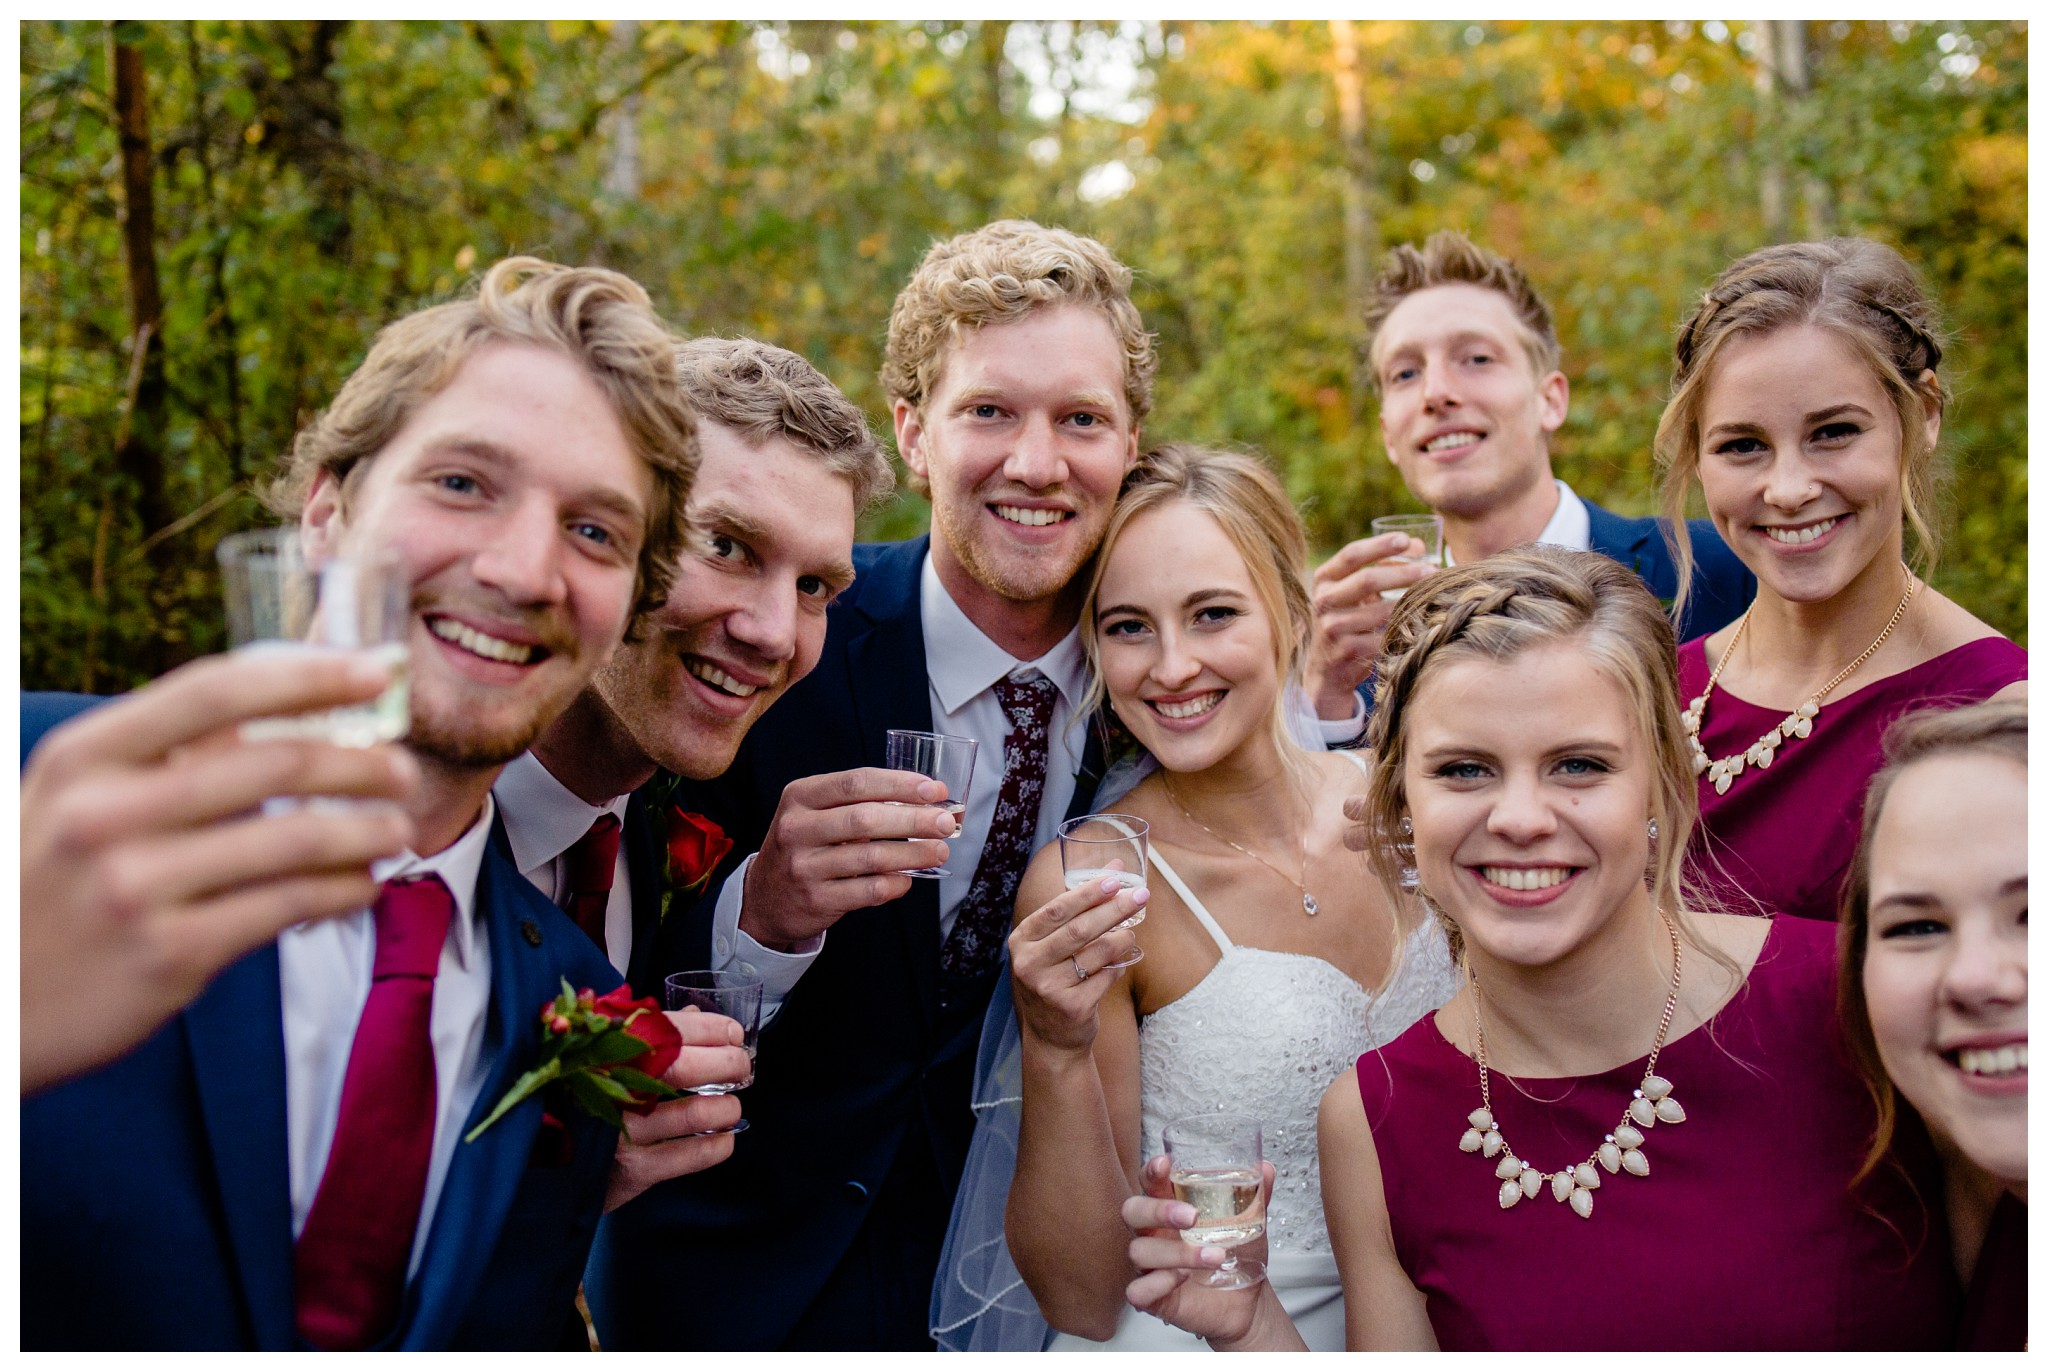 Campbell Valley Park Wedding Photographer Canadian Reformed Church Willoughby Heights Christian Fall Burgundy Navy Roses Wedding_0090.jpg